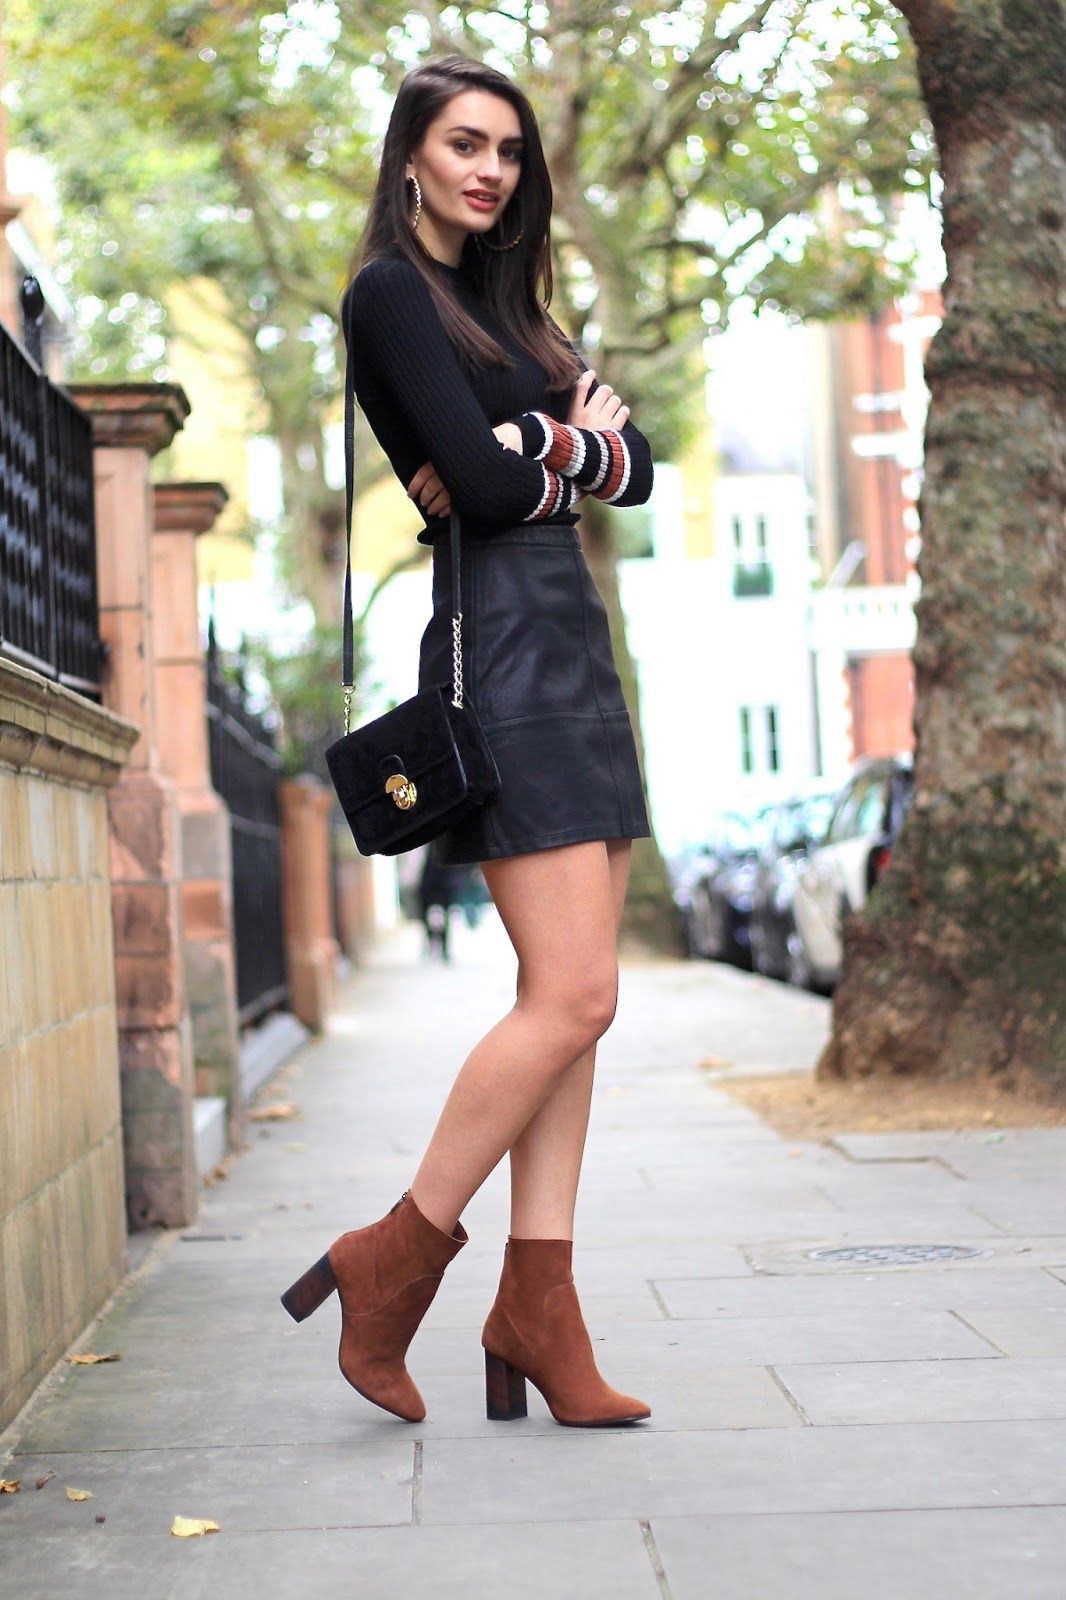 Mini Skirts And Ankle Boots Outfit Tophaarmodelle In 2021 Leather Mini Skirts Fashion Ankle Boots Dress [ 1600 x 1066 Pixel ]